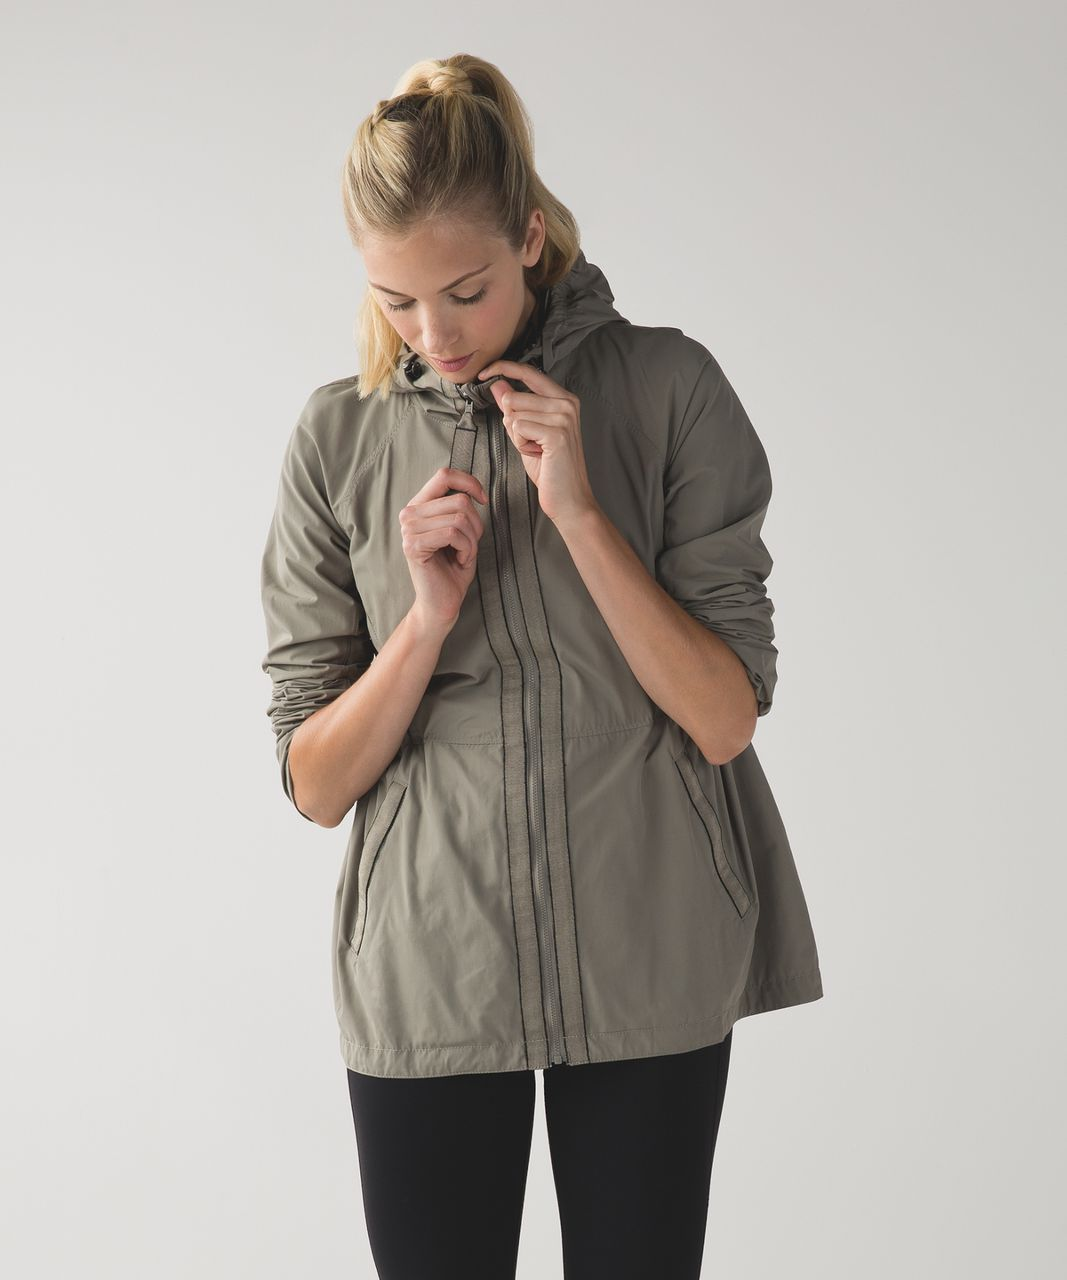 Lululemon Rain for Daze Jacket - Soft Earth / Narrow Bold Stripe Printed Soft Earth Black